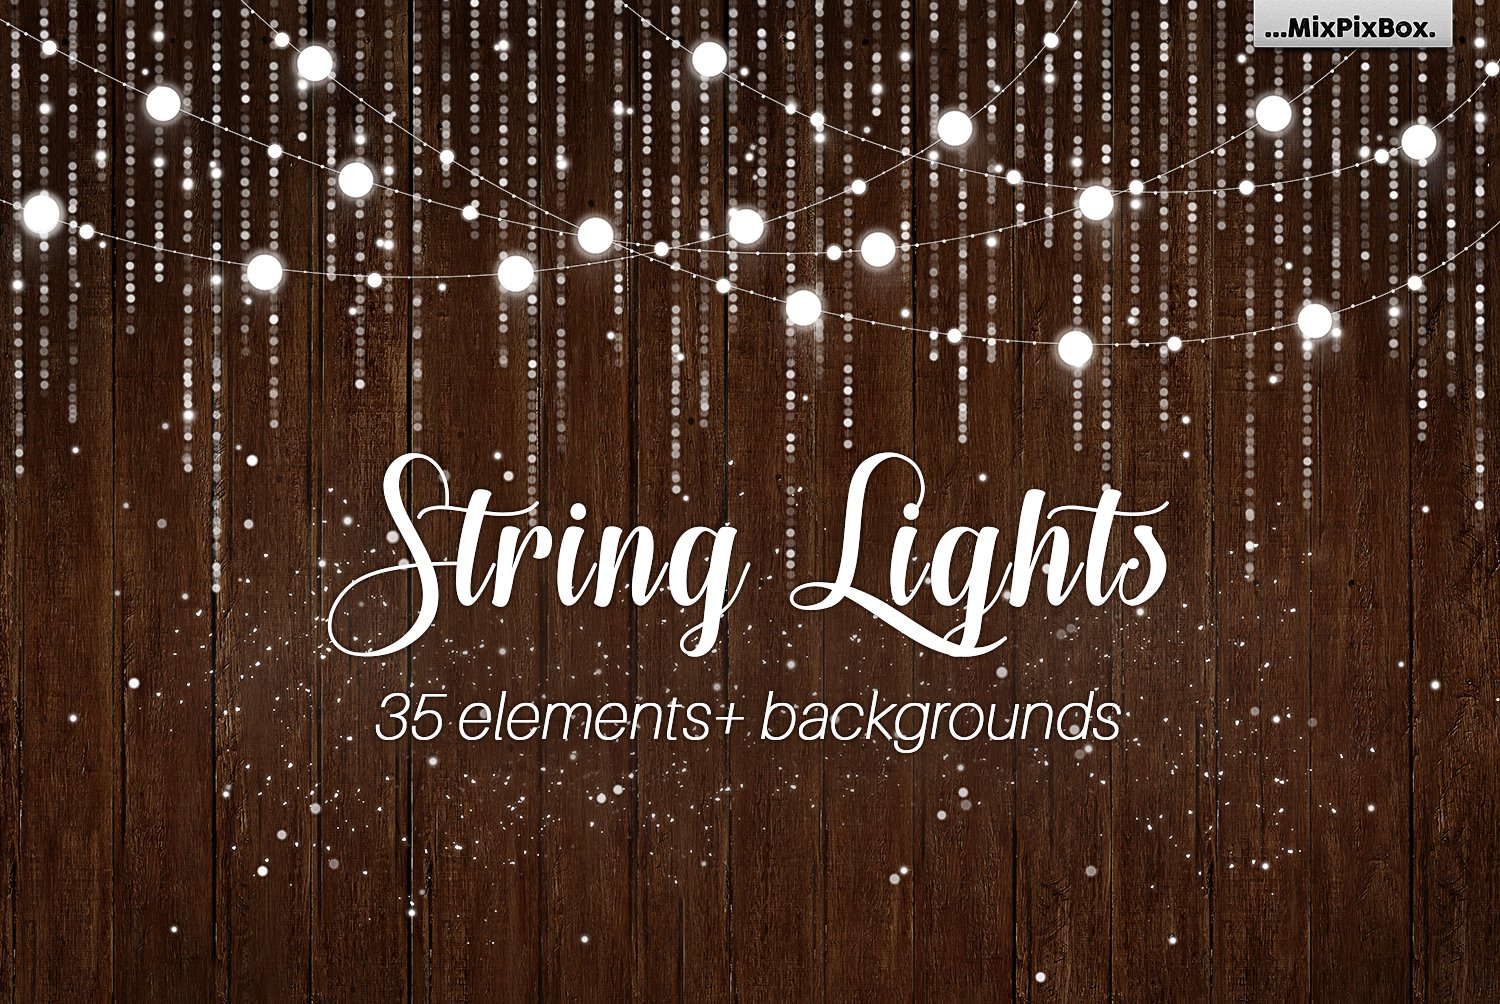 String Lights V3 Clipart Backgrounds Illustrations Creative Market